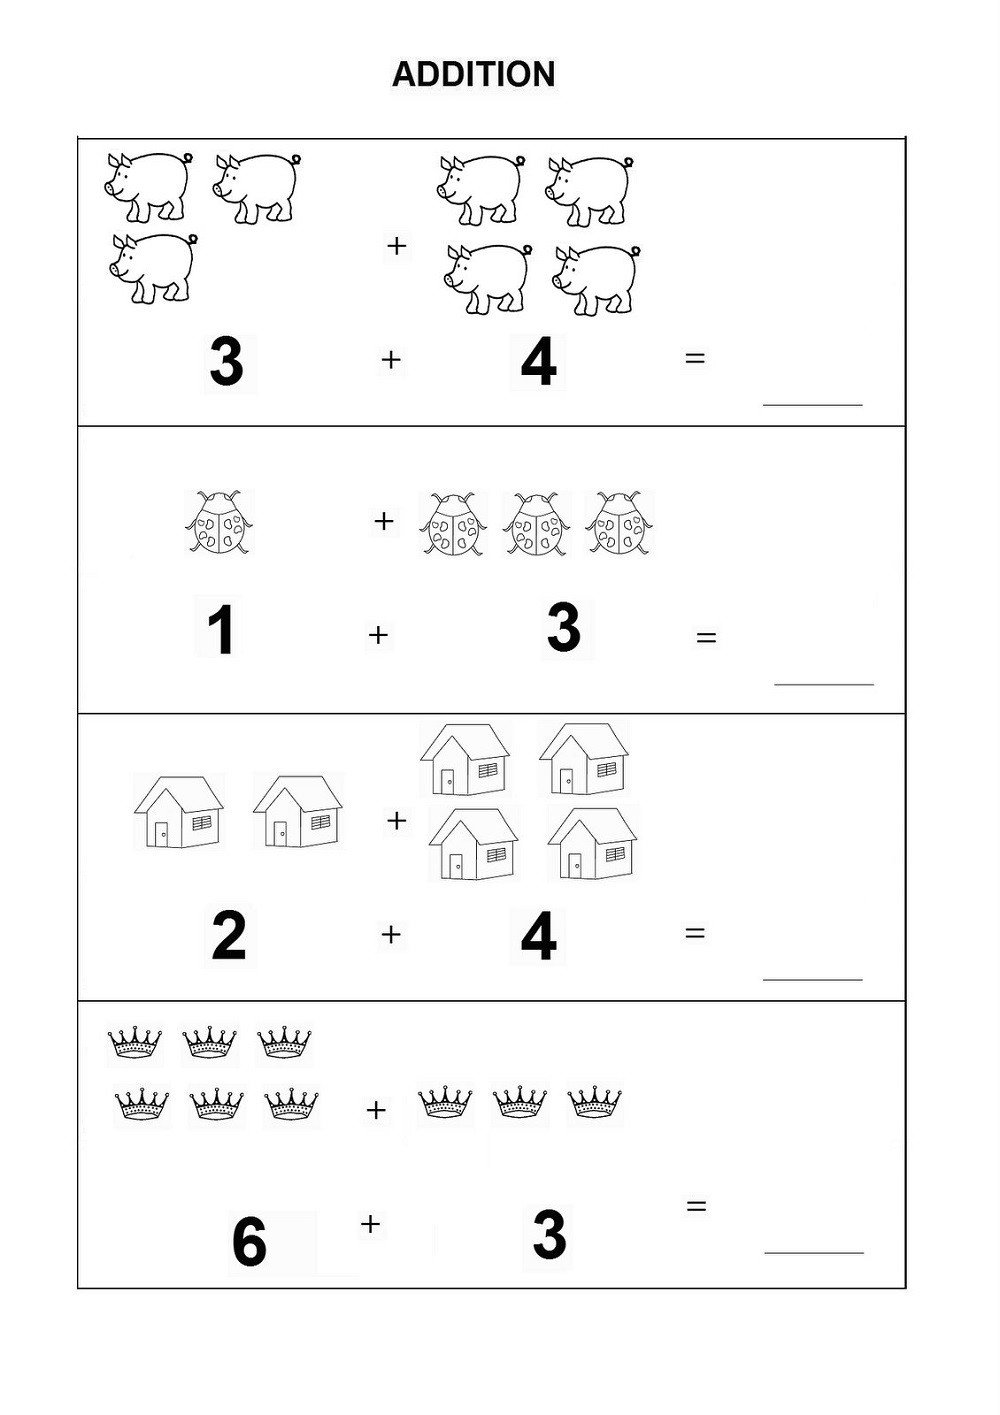 Simple Addition Worksheets for Kindergarten Addition Worksheets for Kindergarten 2019